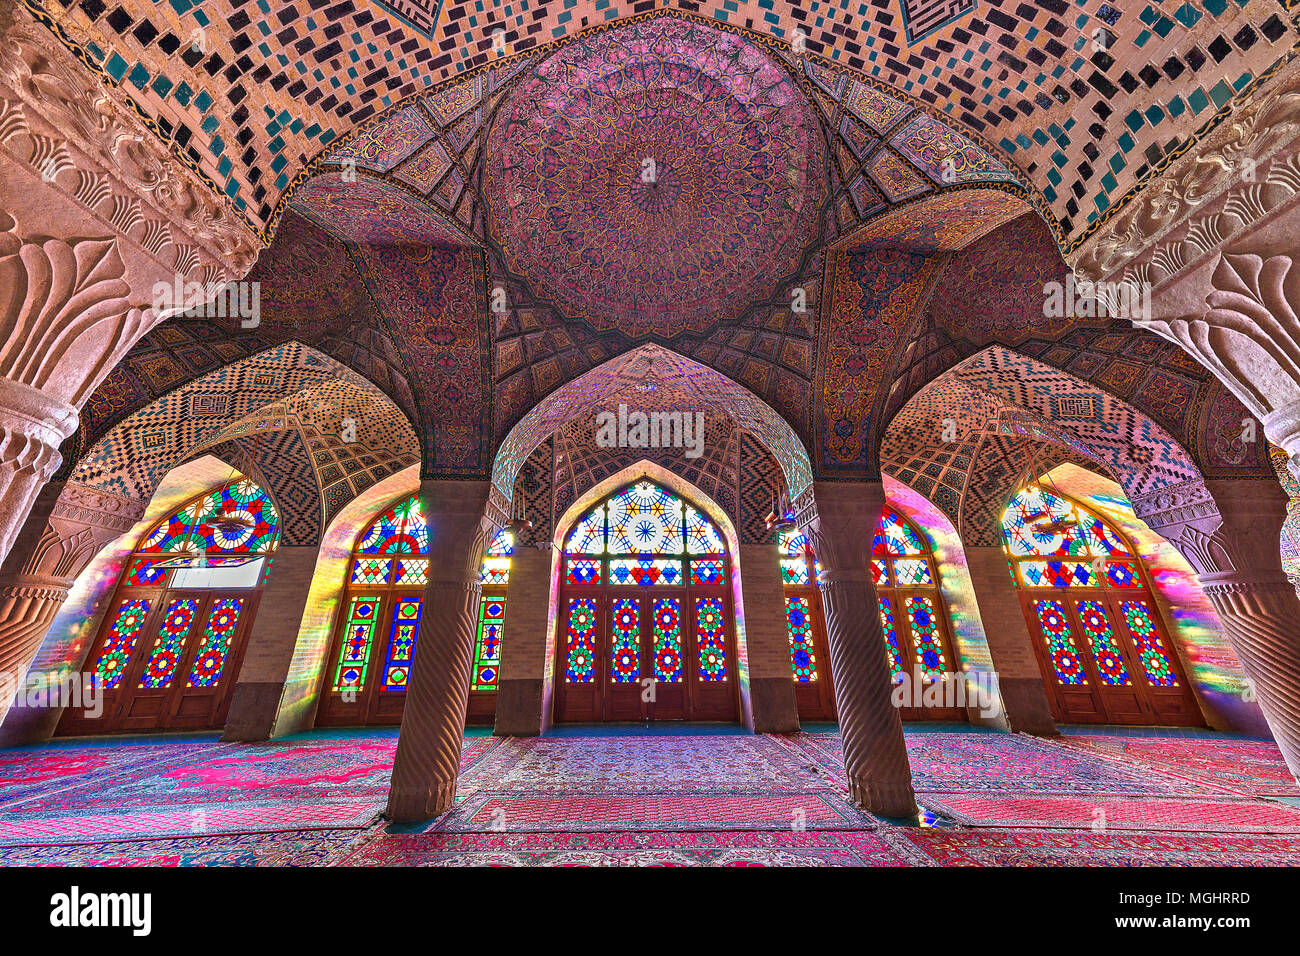 Nasir Ol Molk Mosque known also as Pink Mosque, in Shiraz, Iran - Stock Image